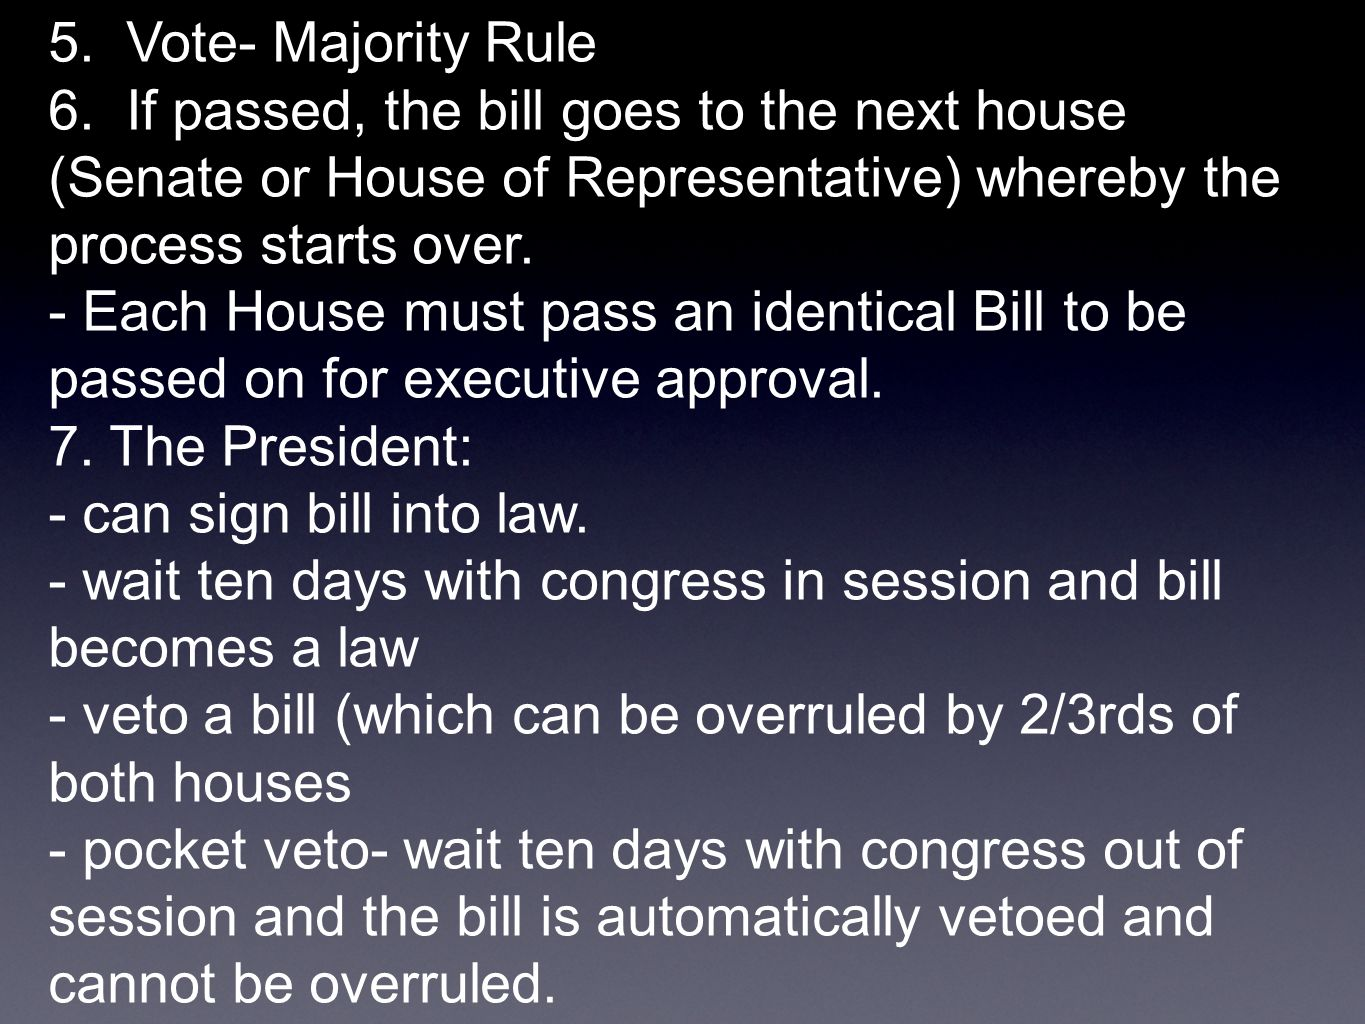 5. Vote- Majority Rule 6. If passed, the bill goes to the next house (Senate or House of Representative) whereby the process starts over.